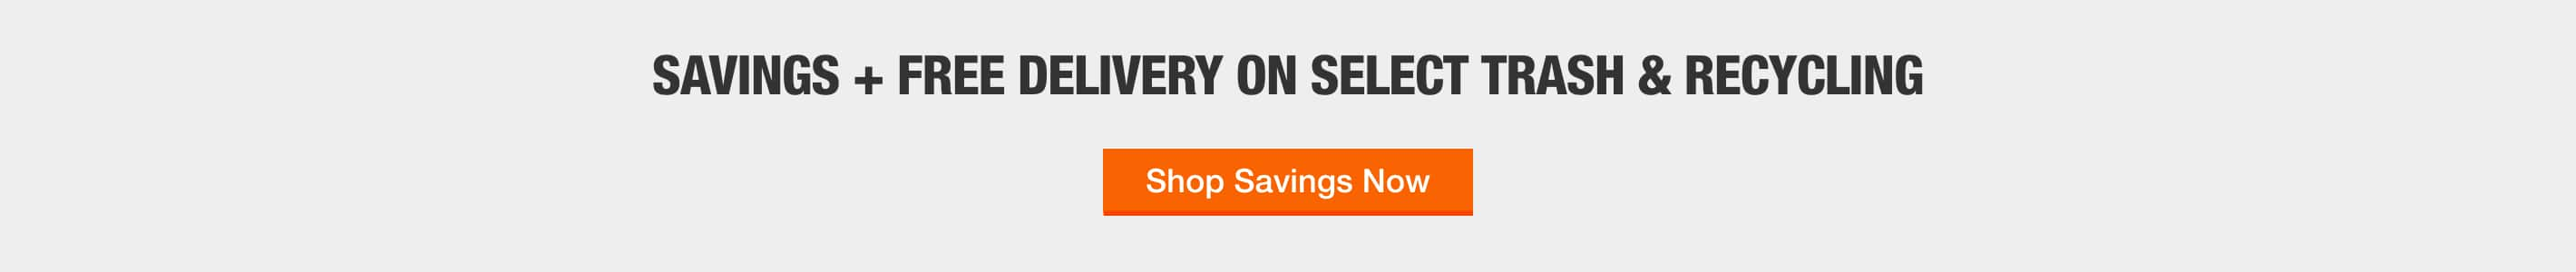 SAVINGS + FREE DELIVERY ON SELECT TRASH & RECYCLING Shop Savings Now